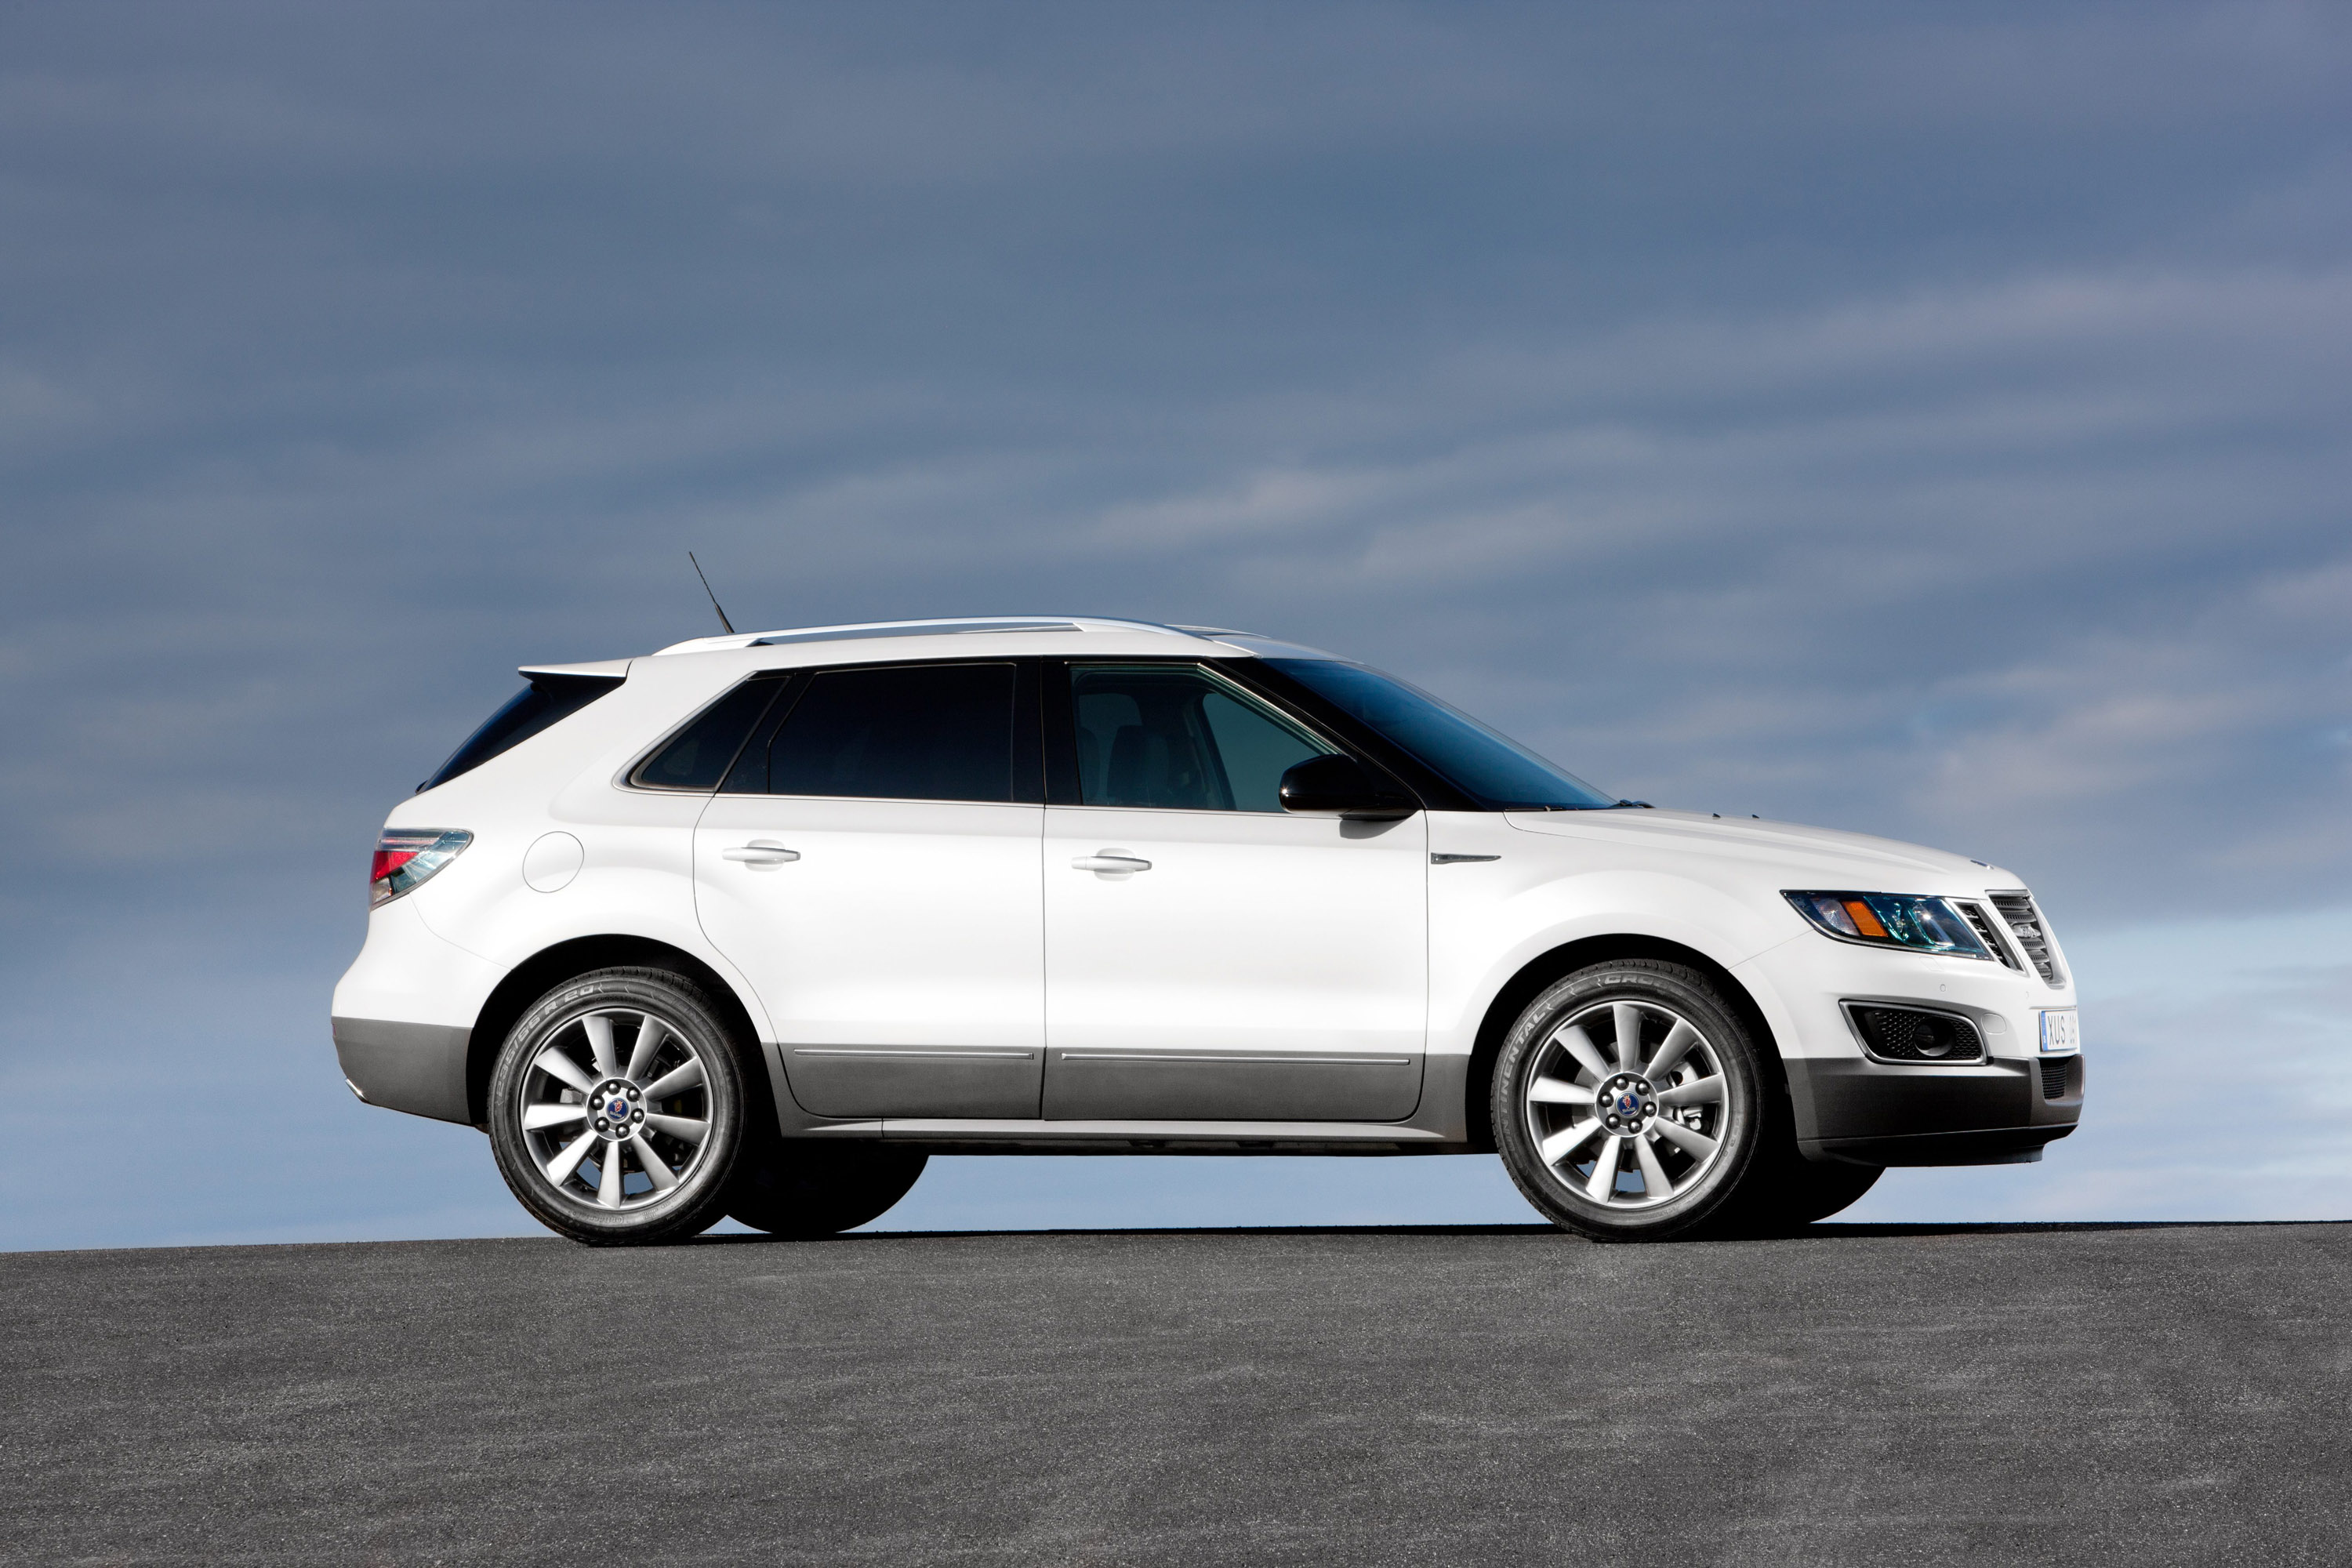 Saab 9 4x Finally An Interesting Vehicle From The Company